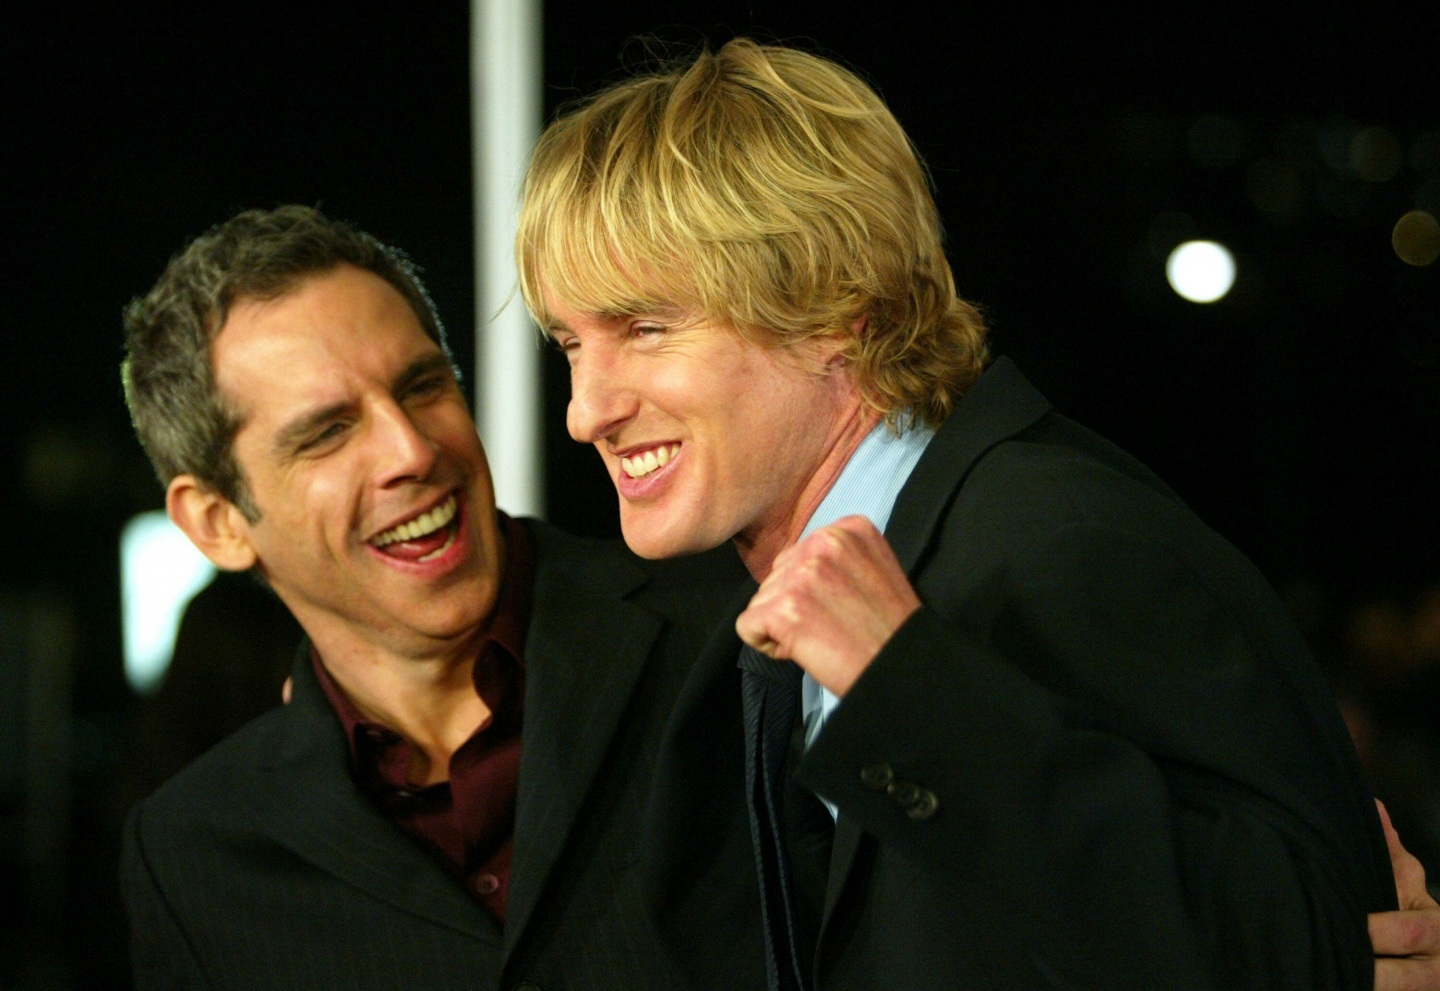 good-friends-ben-stiller-and-owen-wilson-3b726efaa5d3dad62f8619571161abff-large-373244